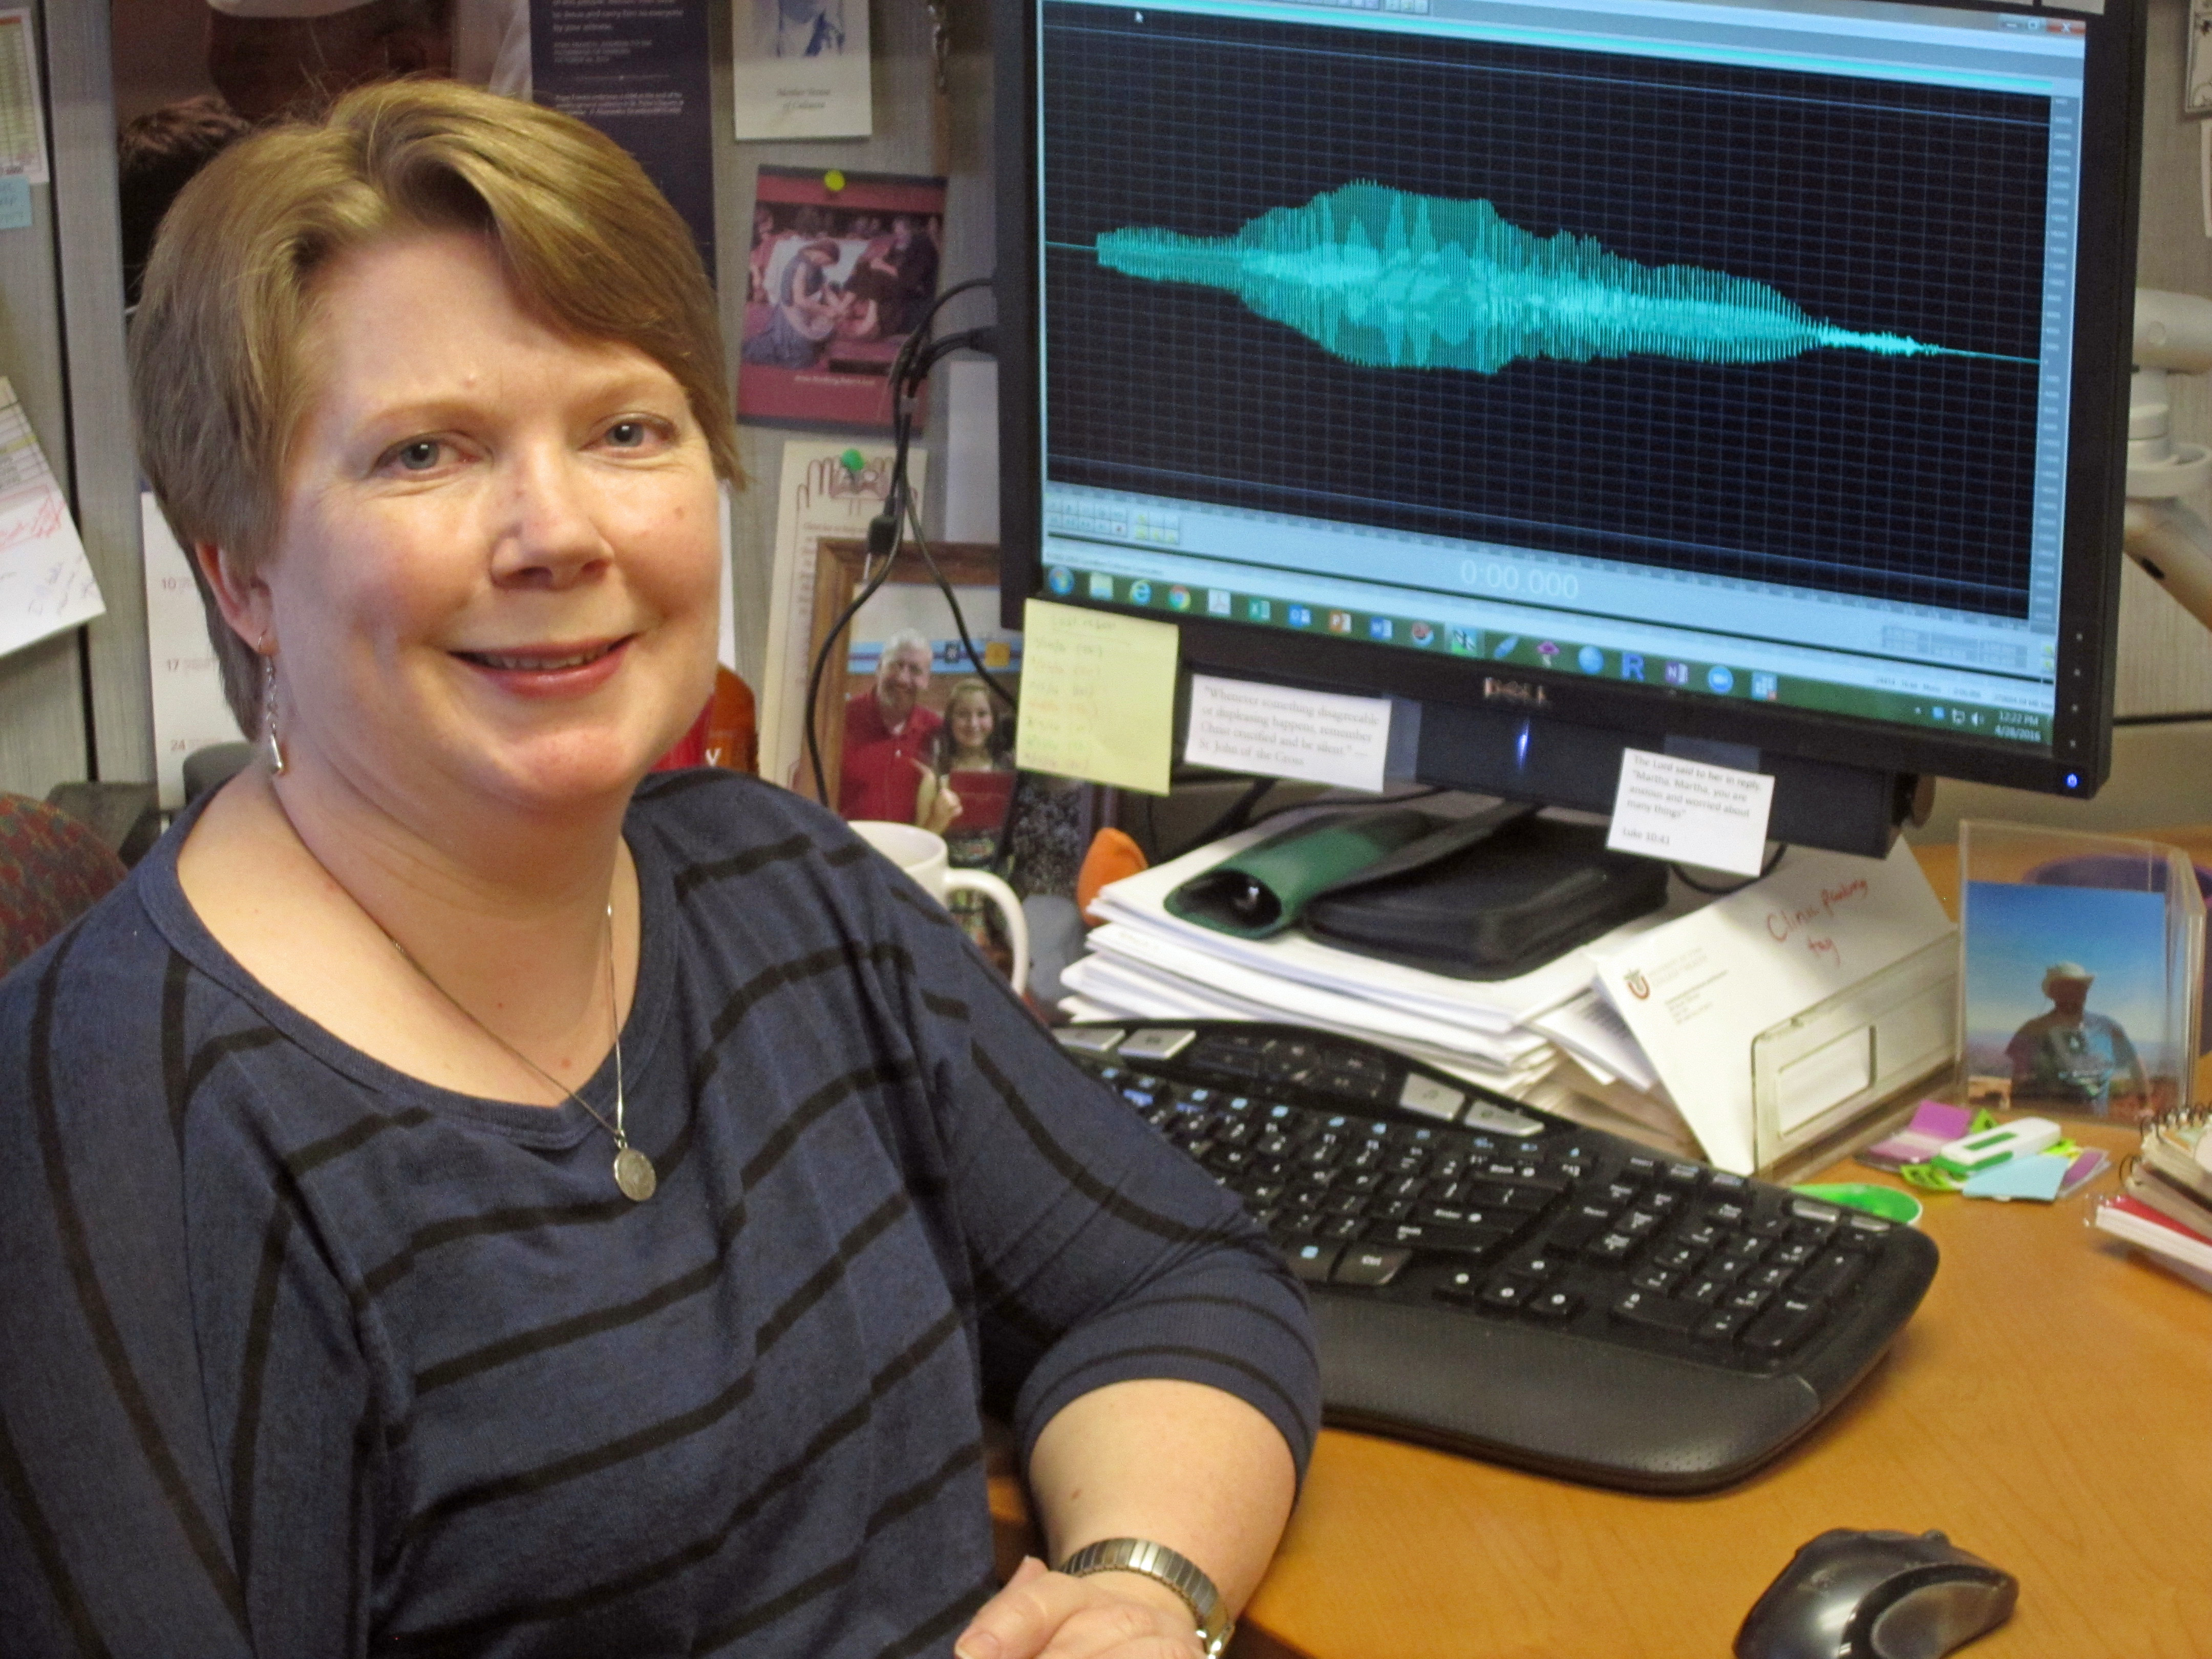 Sarah Hargus Ferguson is an associate professor of communication science and disorders at the University of Utah. She led a series of studies with her students that were presented at the national meeting of the Acoustical Society of America in Salt Lake City. The studies dealt with how British accents can confuse older people with hearing impairments, how fast talking can impair intelligibility, and how listeners perceive gender and anger in people's voices.